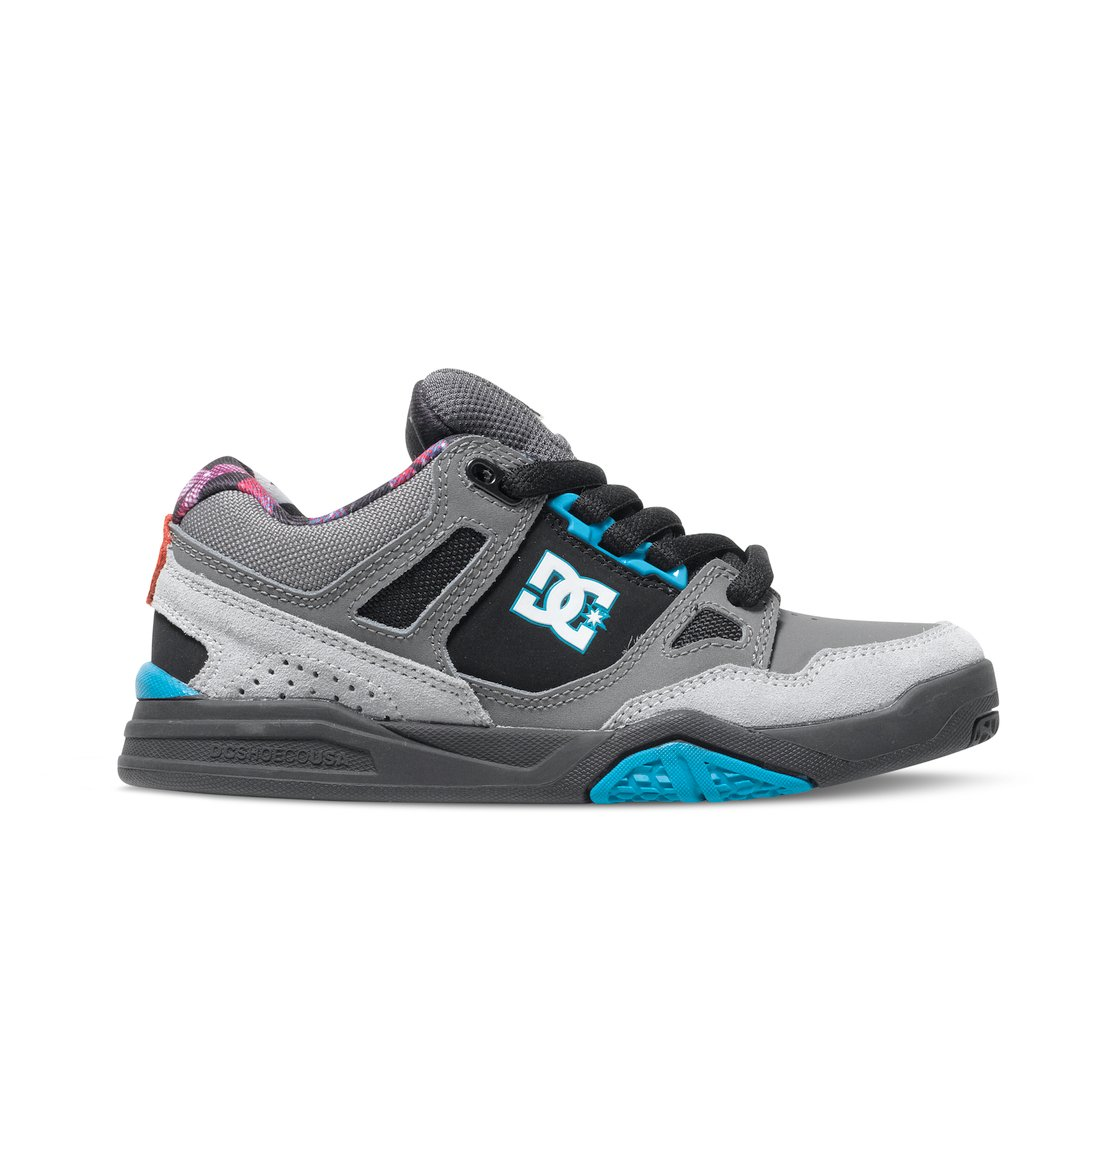 boy 39 s 8 16 stag 2 ken block shoes adbs100148 dc shoes. Black Bedroom Furniture Sets. Home Design Ideas